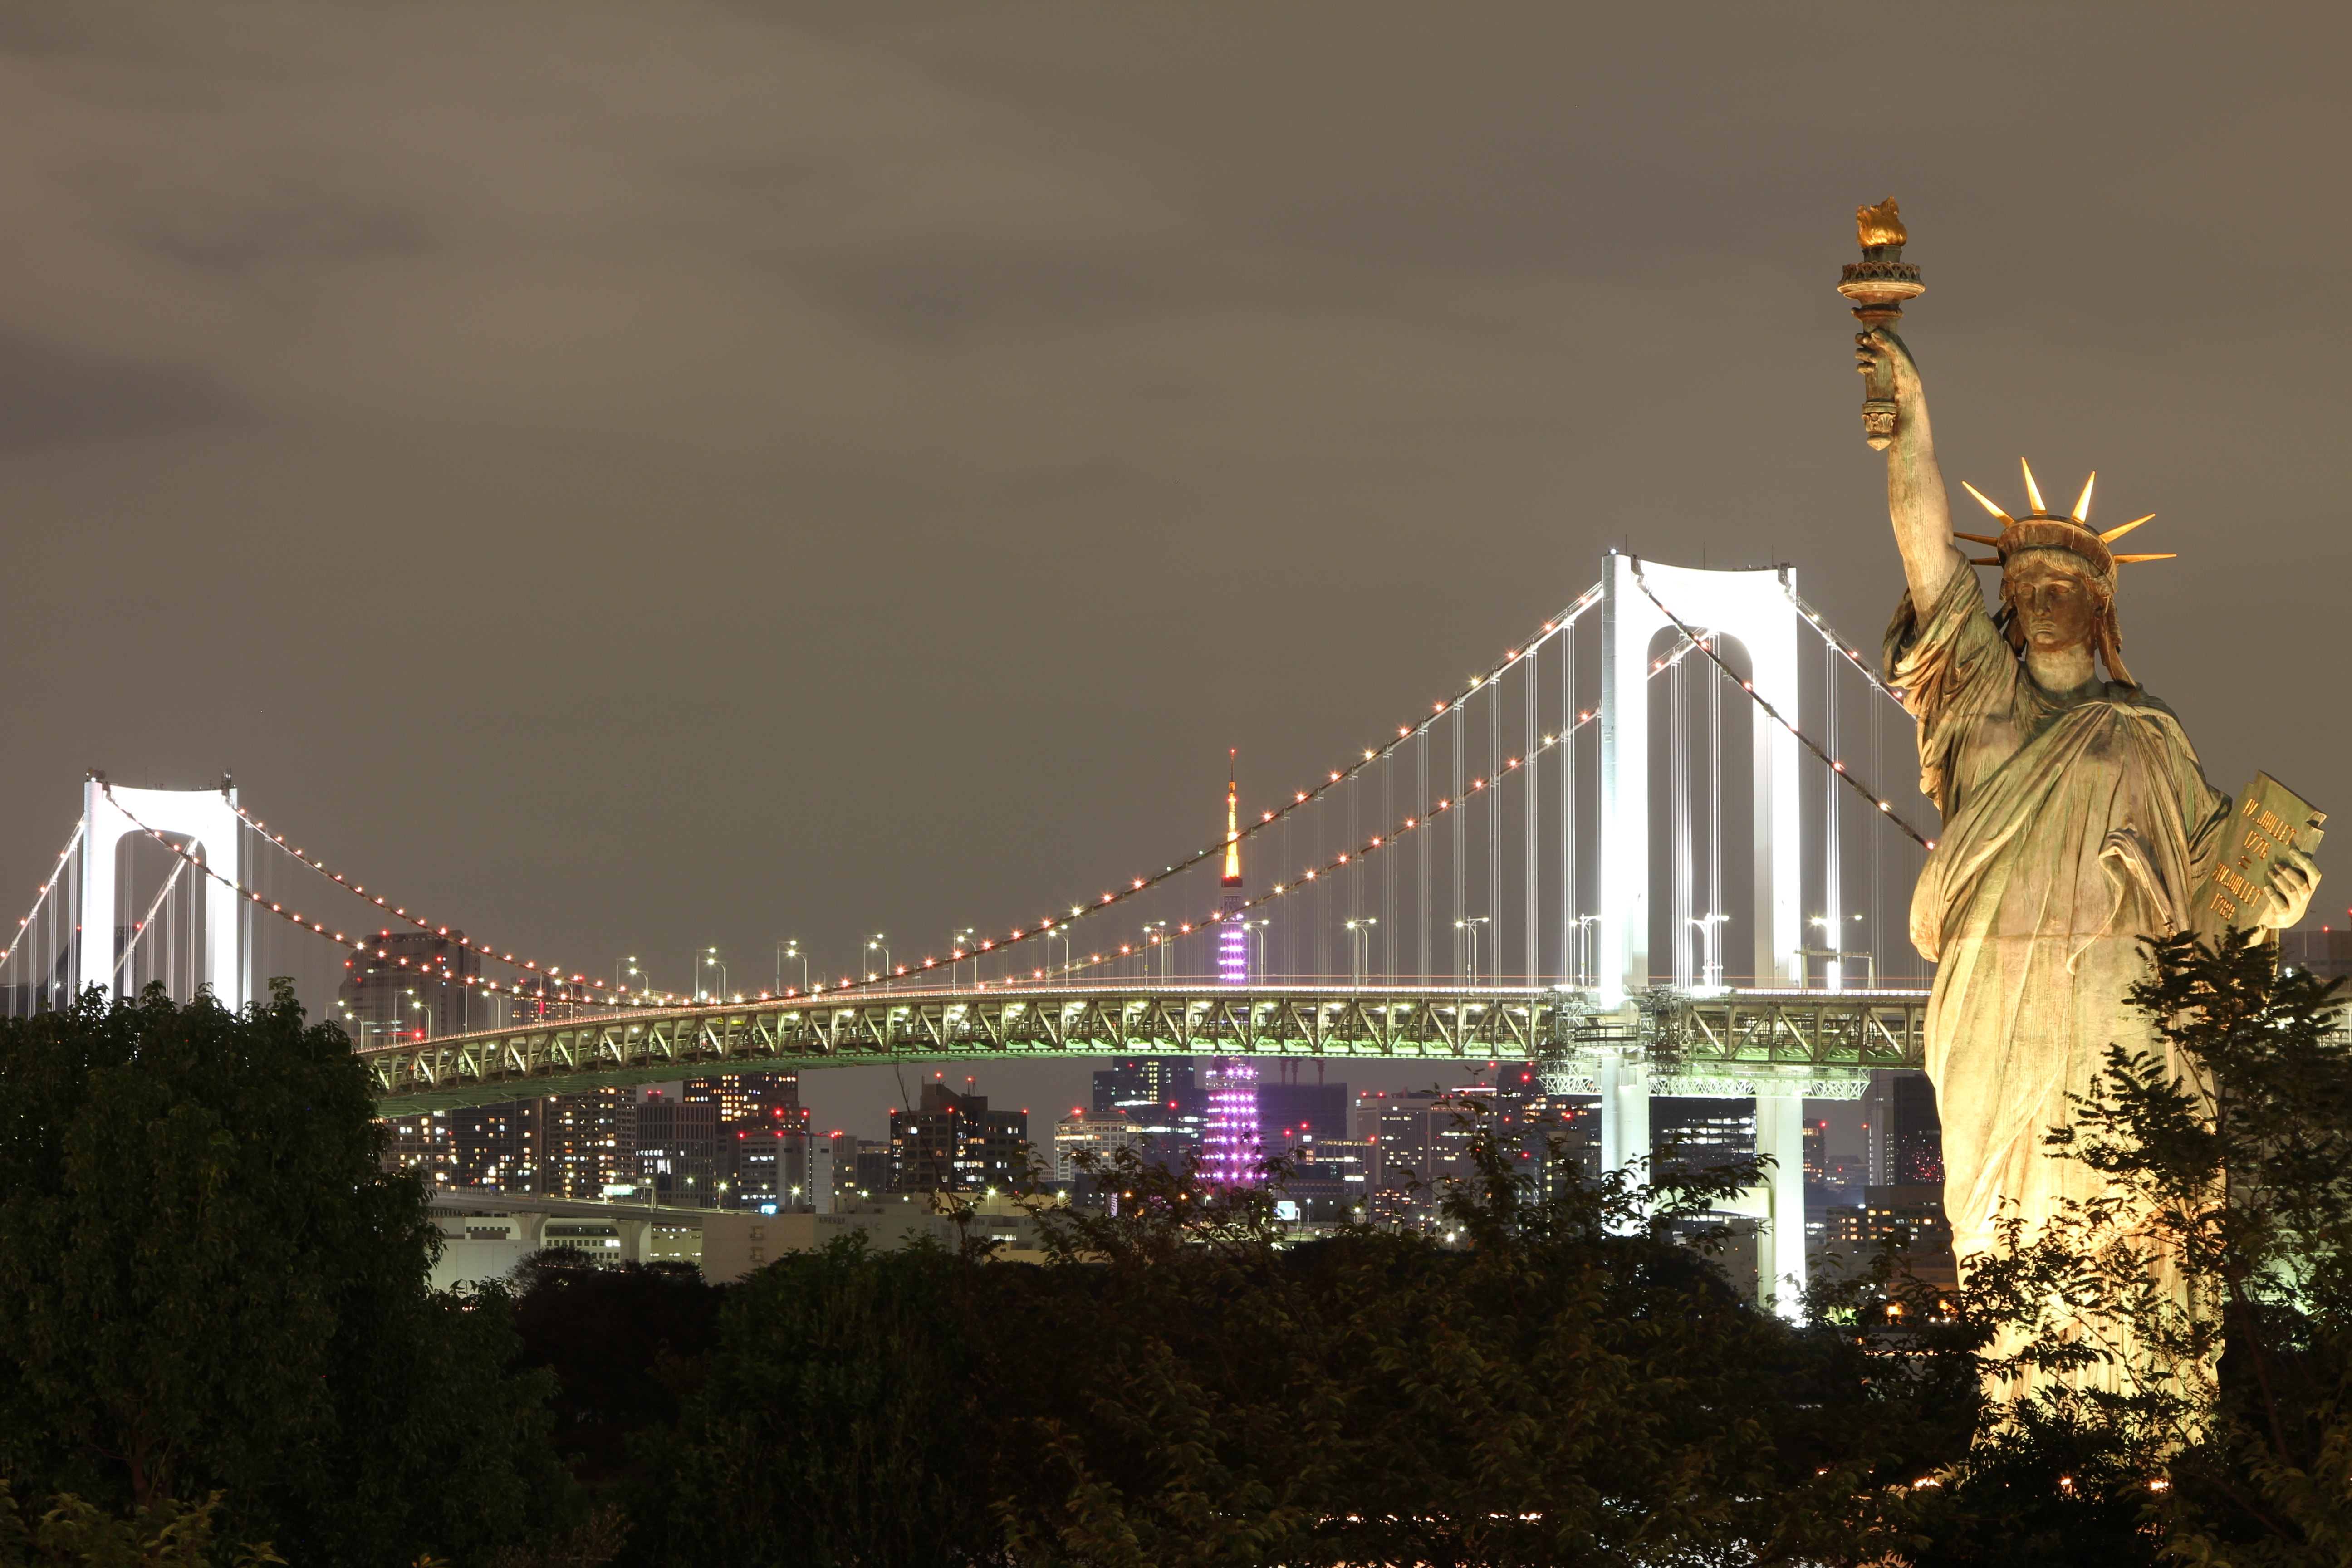 The night view of the Statue of Liberty and Brooklyn bridge you'll get a chance to see after Investing in NYC rental real estate